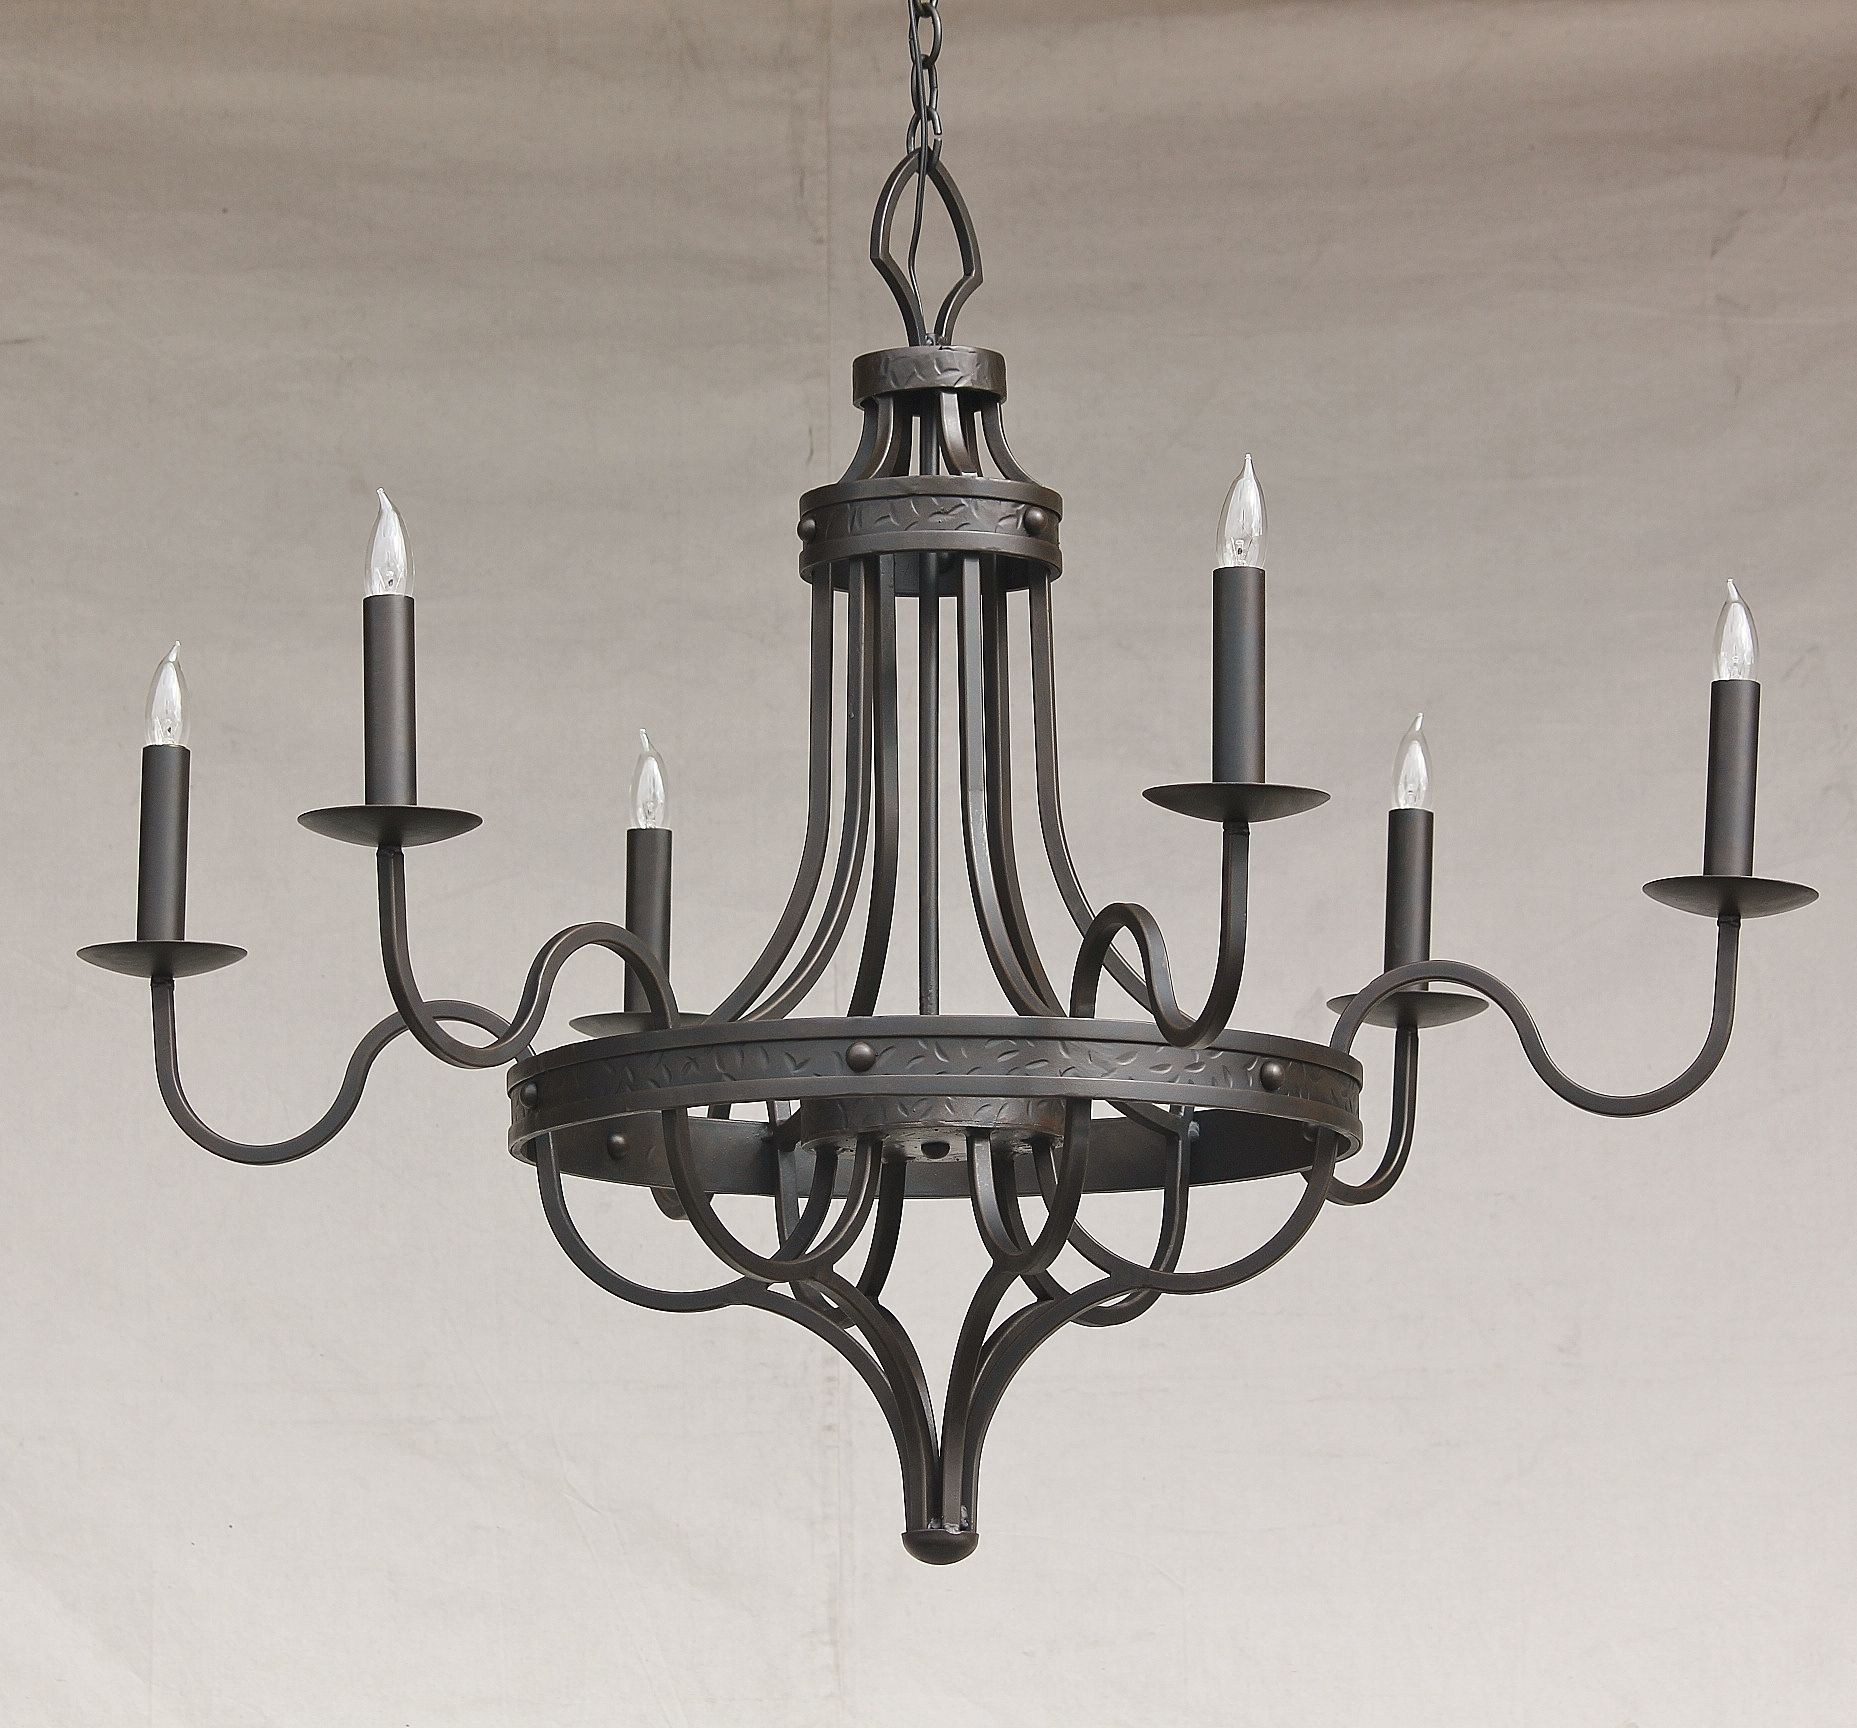 Lights Of Tuscany 1075 6 Contemporary Spanish Style Wrought Iron Chandelier